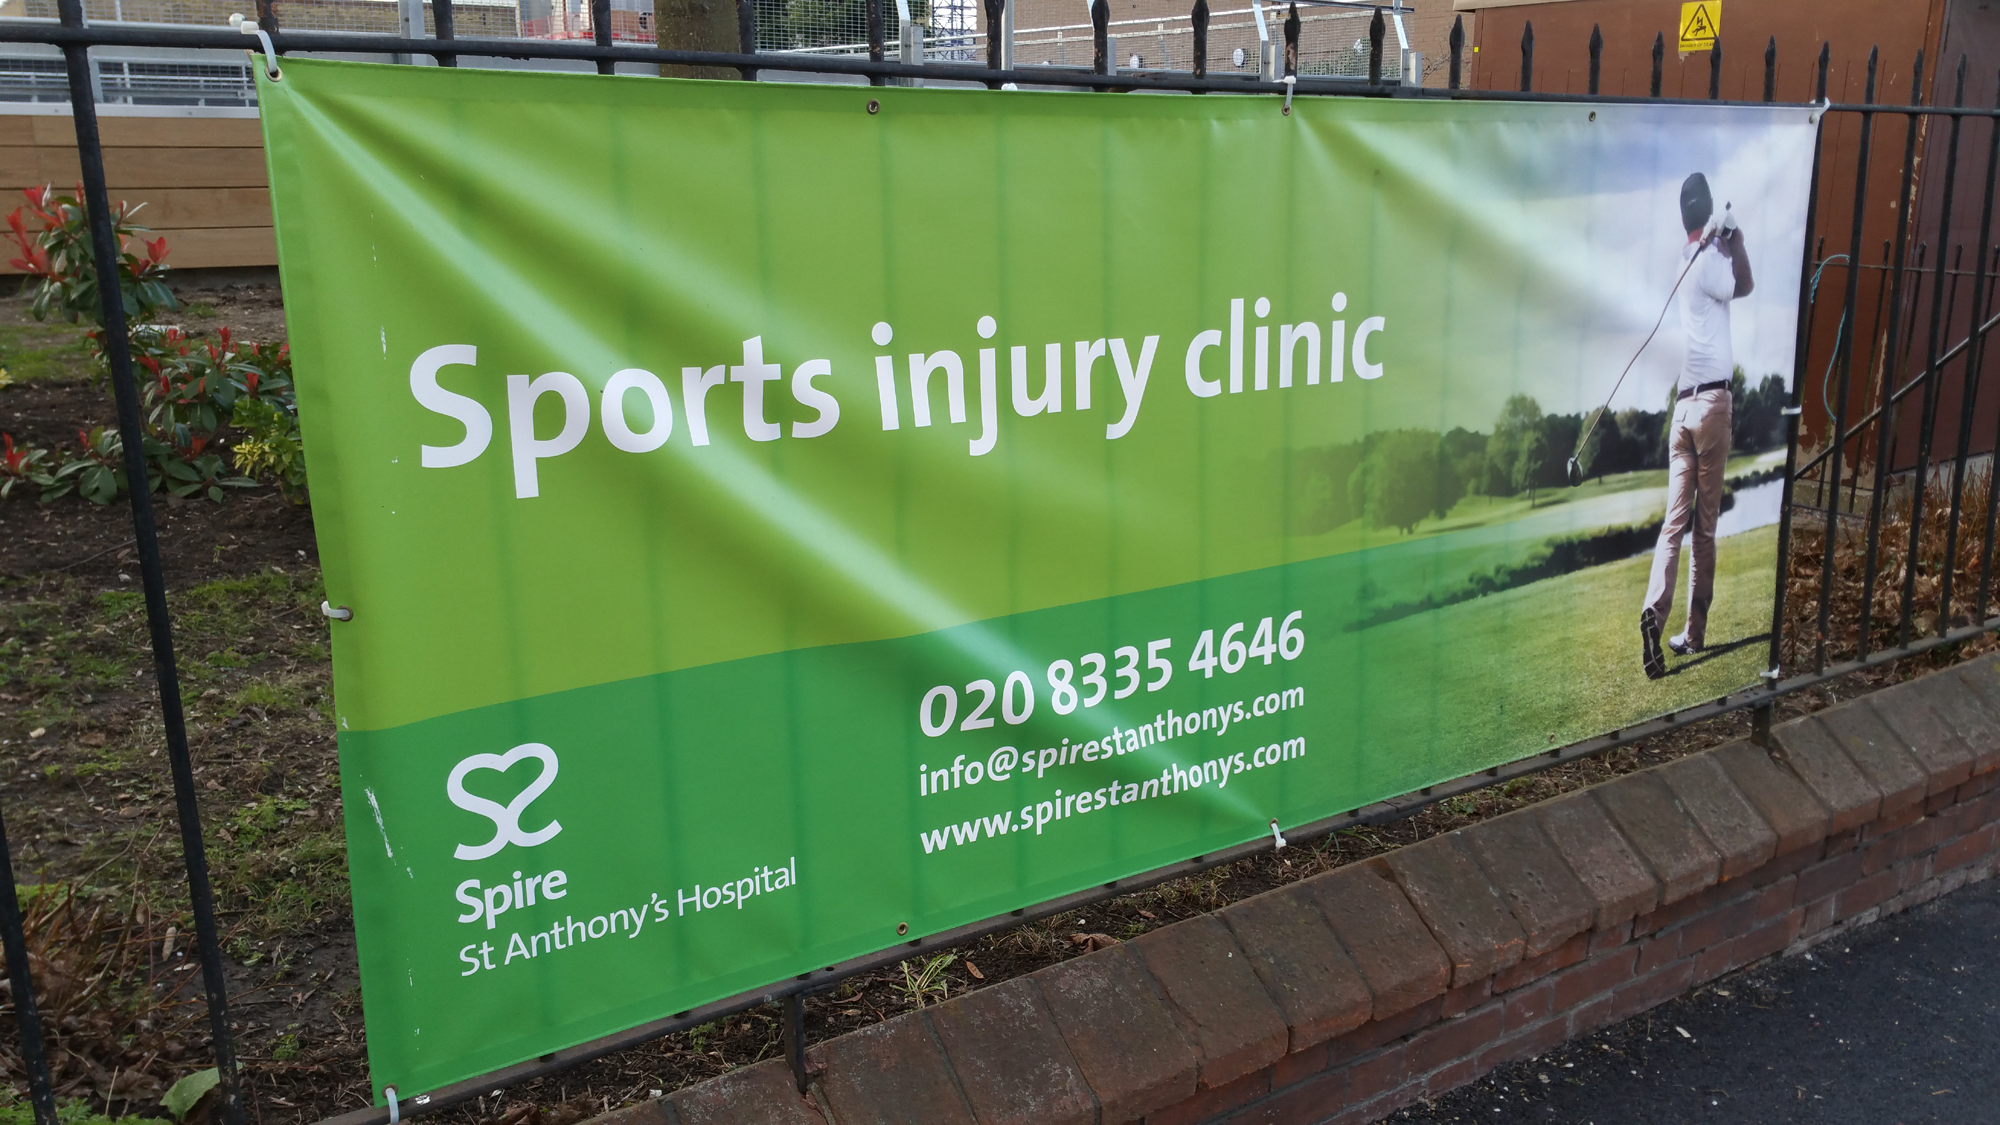 Spire St Anthony's Hospital - Sports injury clinic